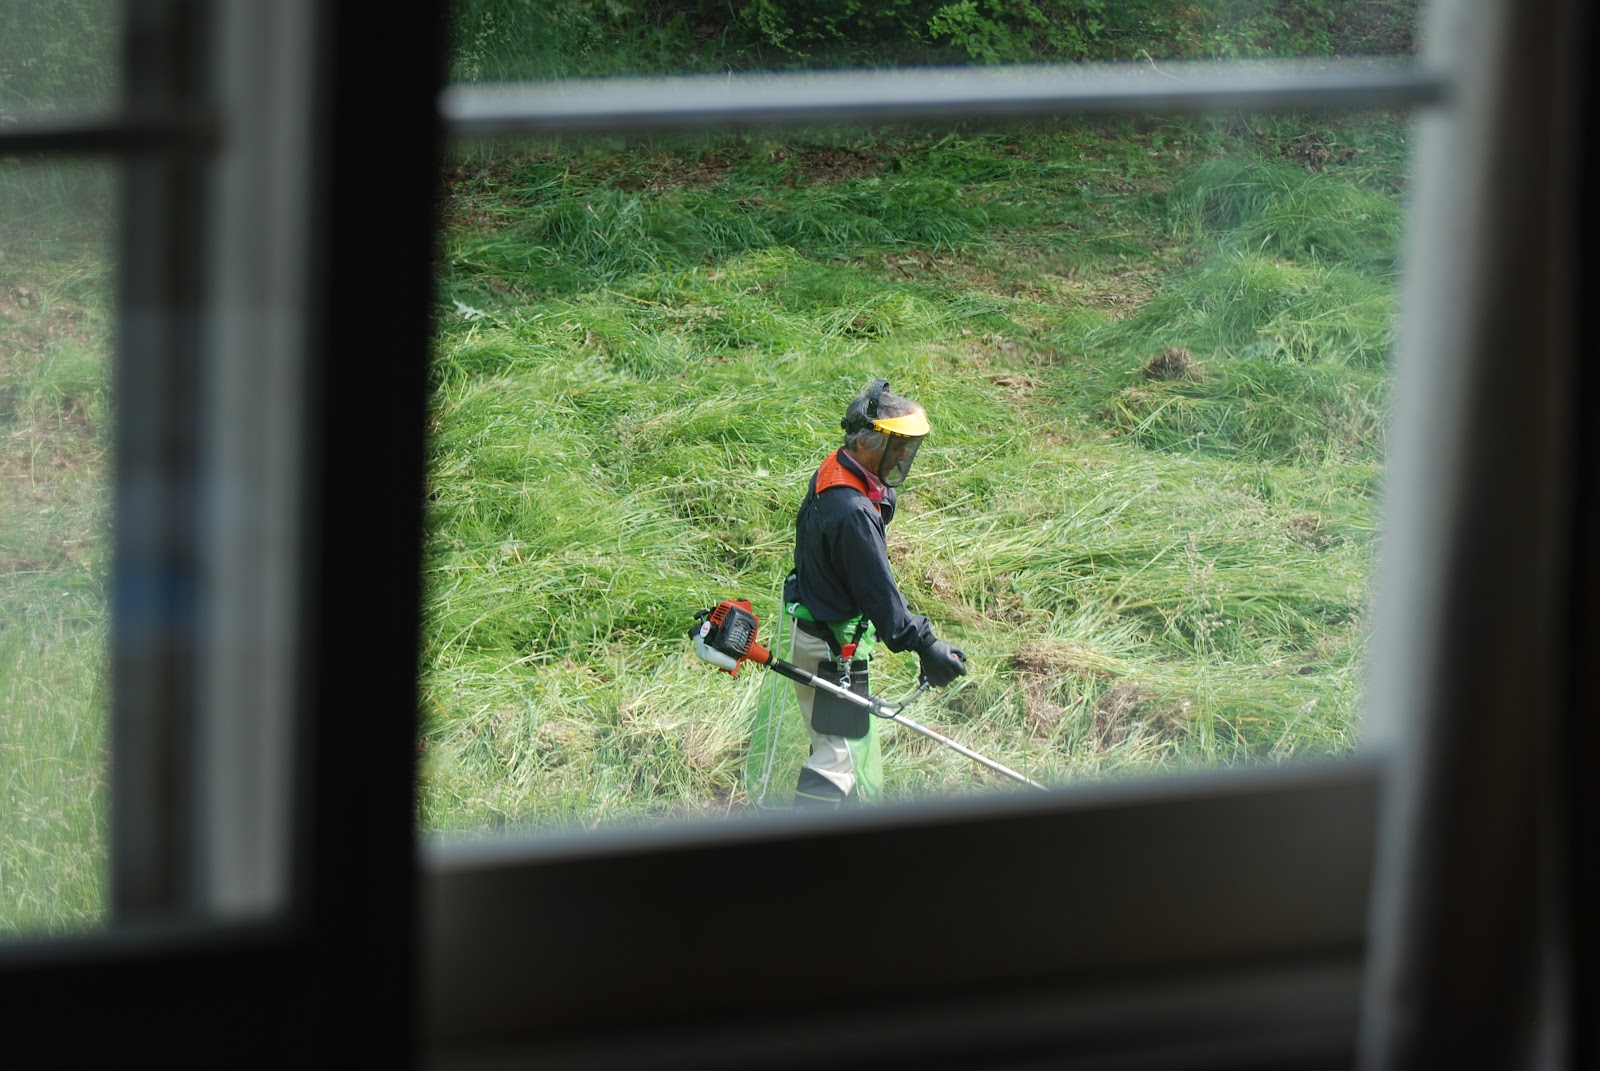 Kyle and Bre in Japan: Japanese lawn mowing